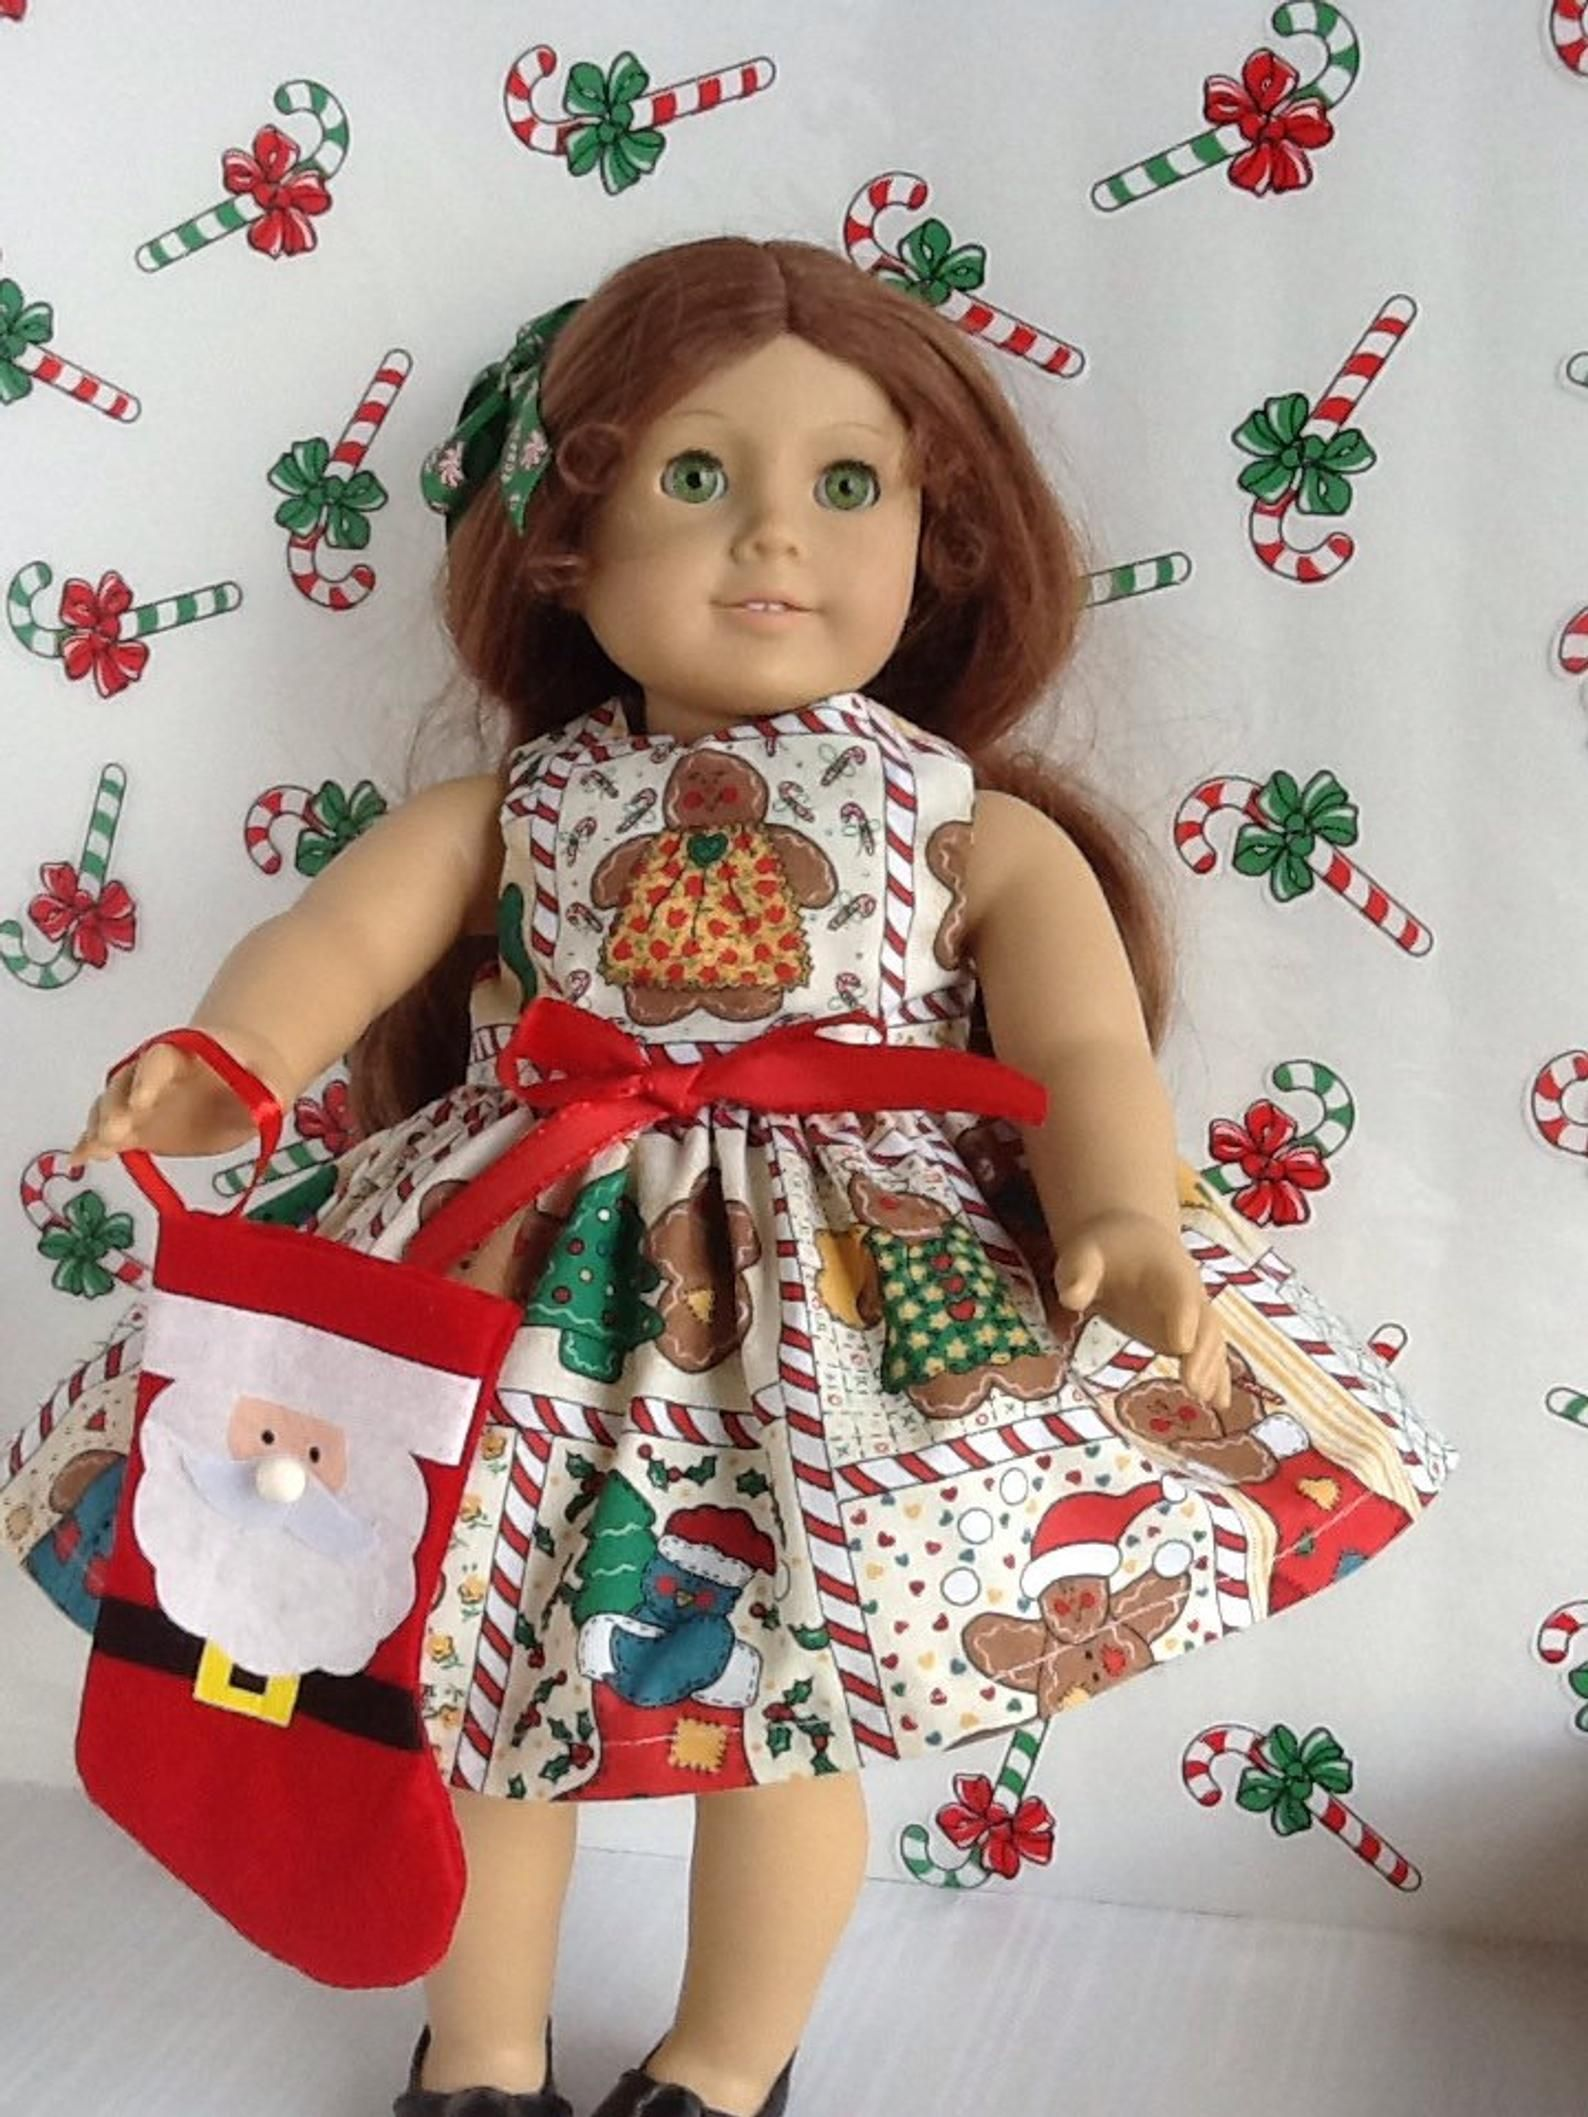 Christmas American Girl 18 inch Doll Dress Gingerbread and Candy Cane Print with Matching Bow ~FREE SHIPPING~ #18inchdollsandclothes